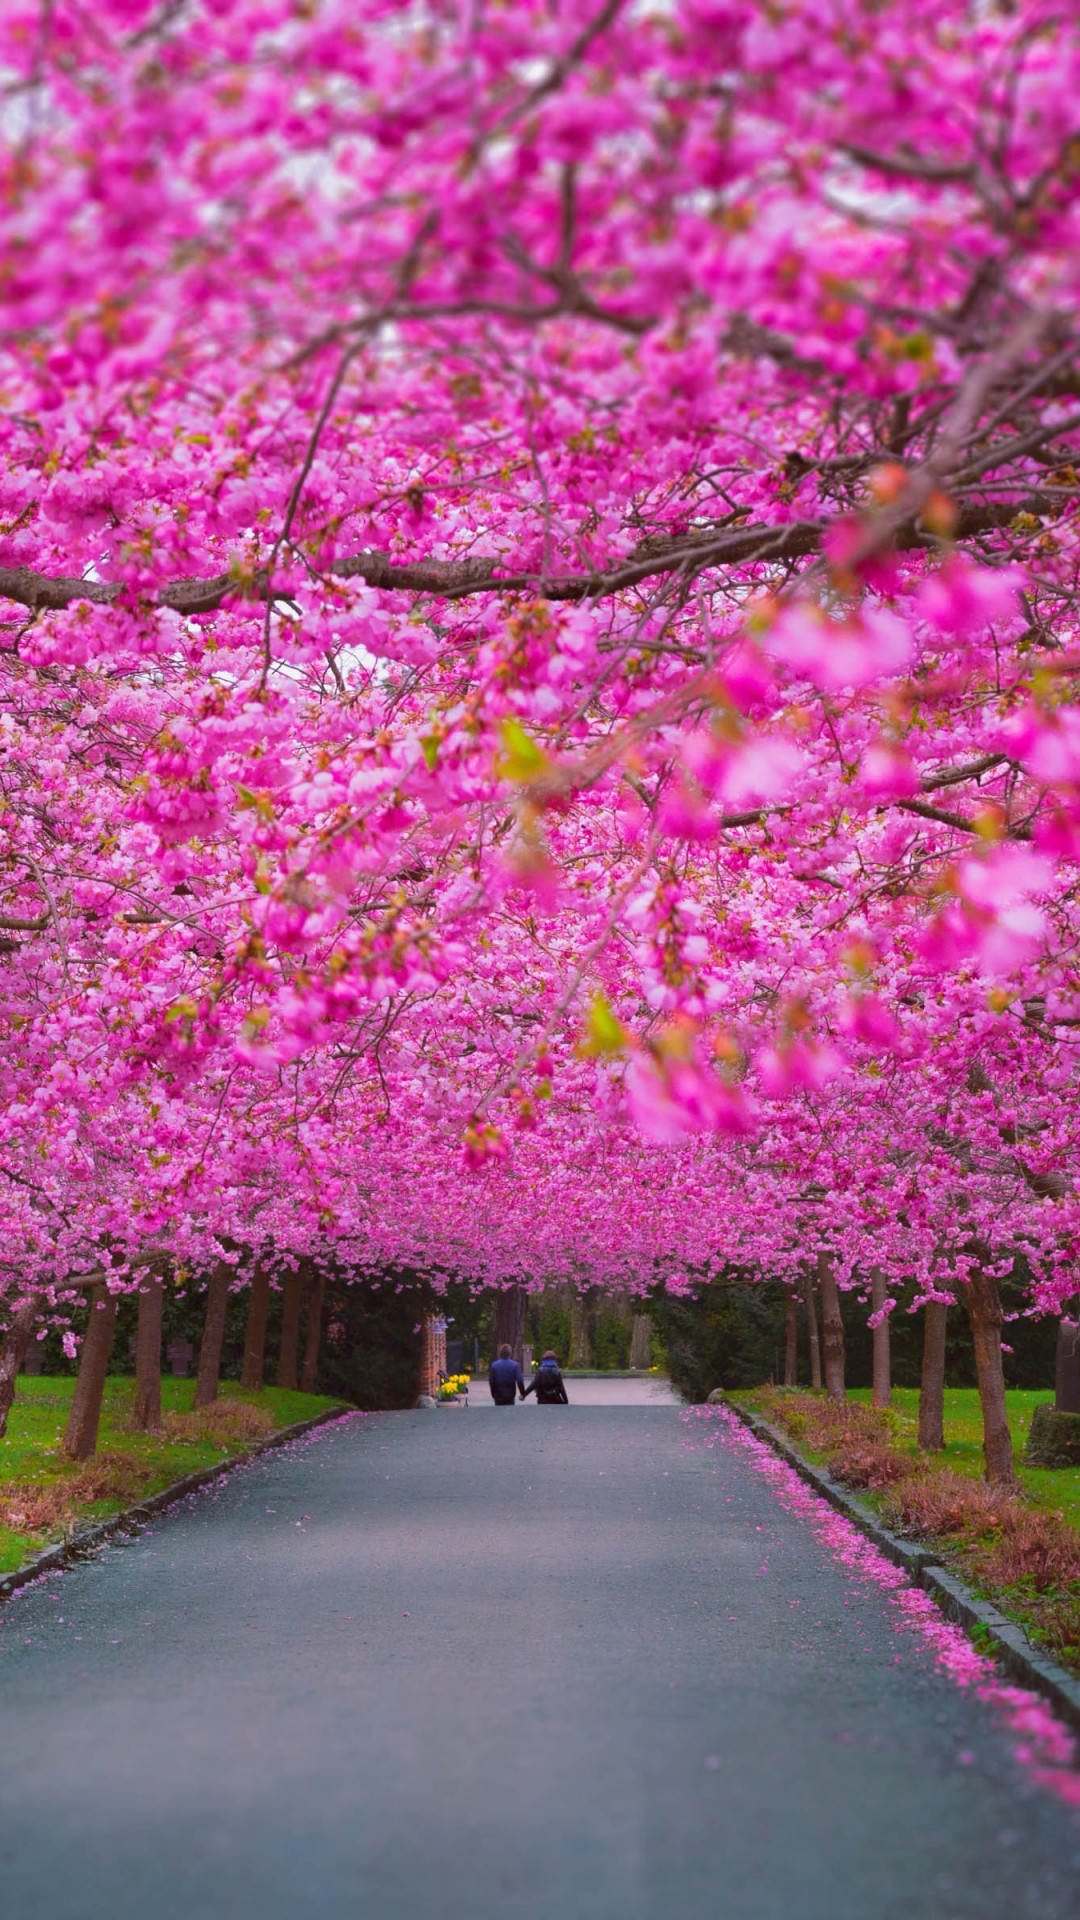 wallpaper trees 4k 5k wallpaper sakura spring nature